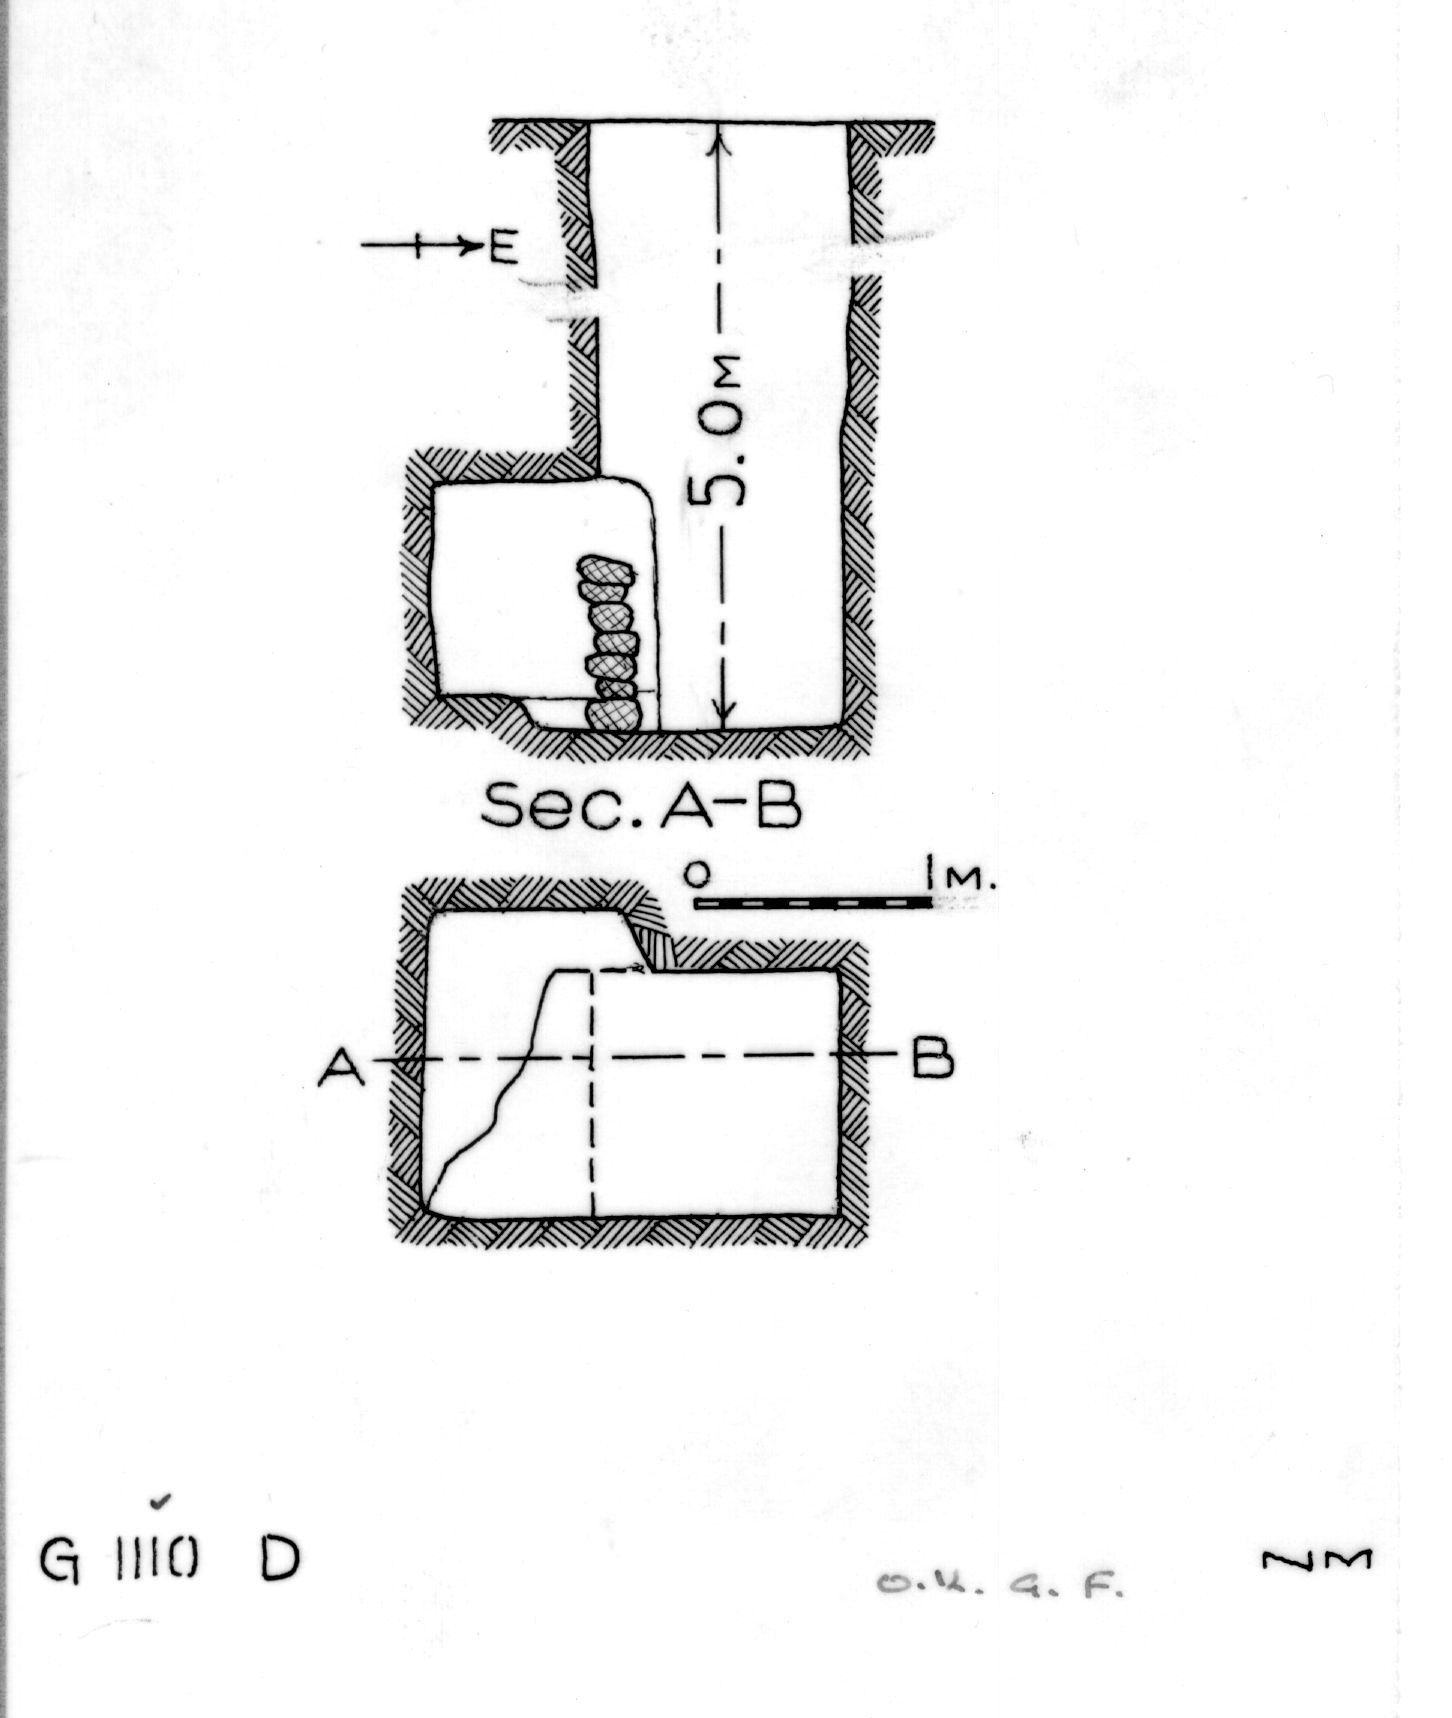 Maps and plans: G 1110, Shaft D